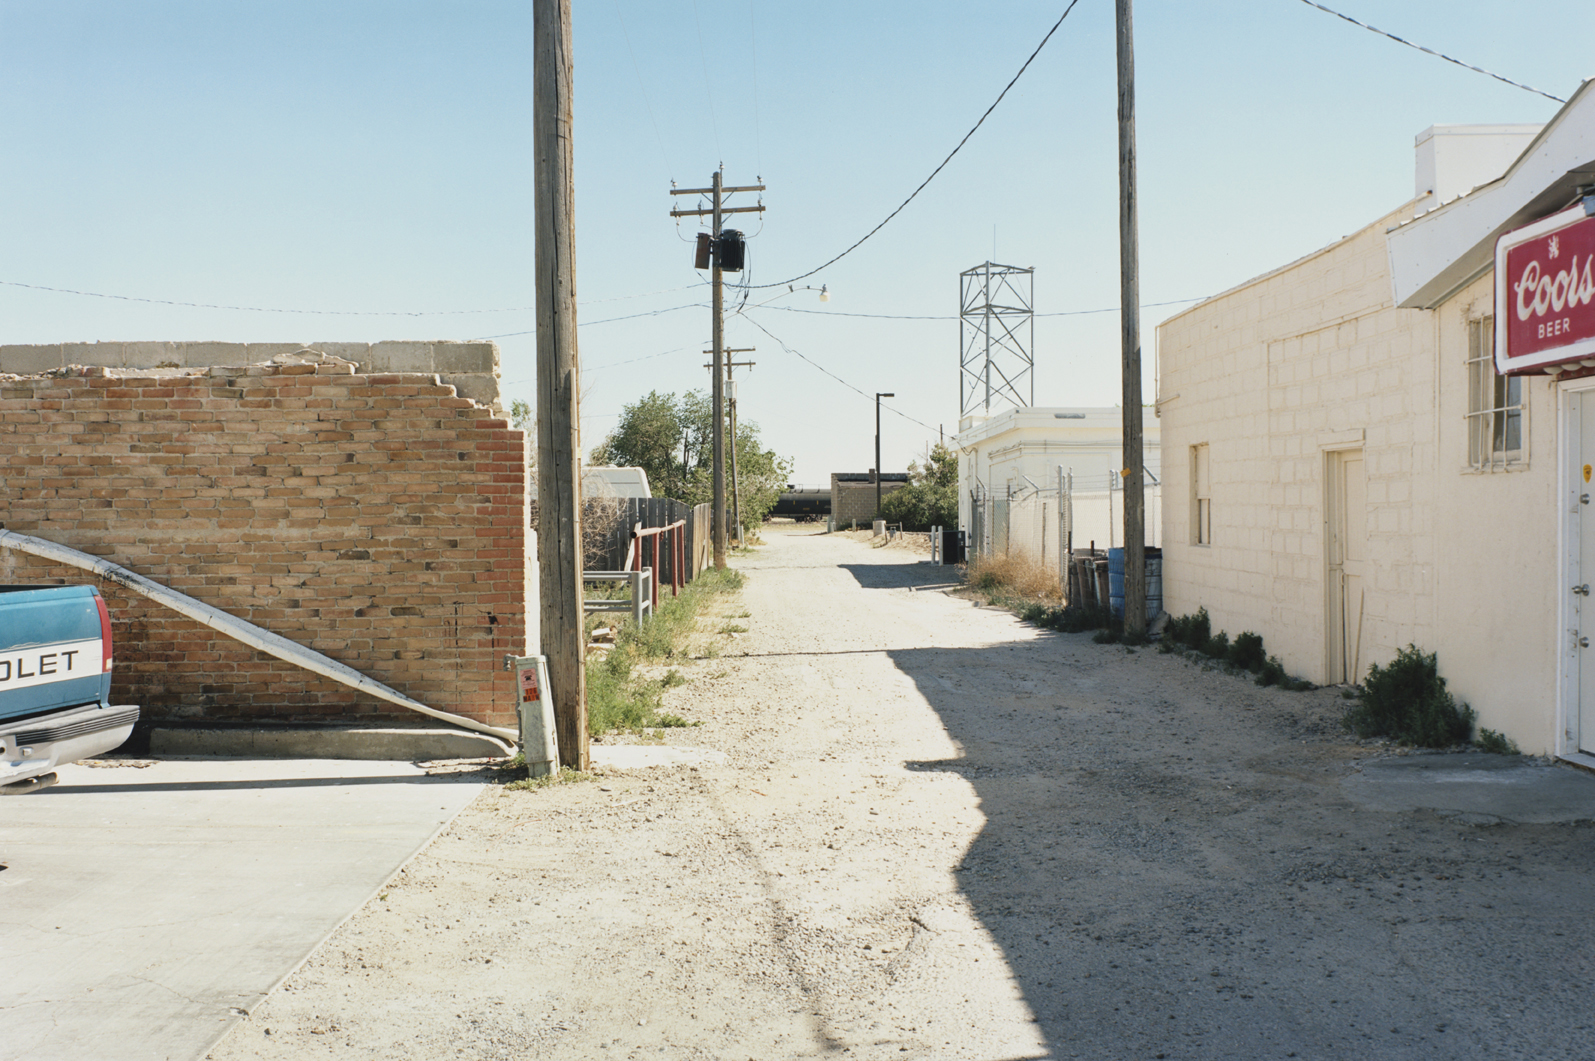 King St Alley, Shoshoni, Wyoming